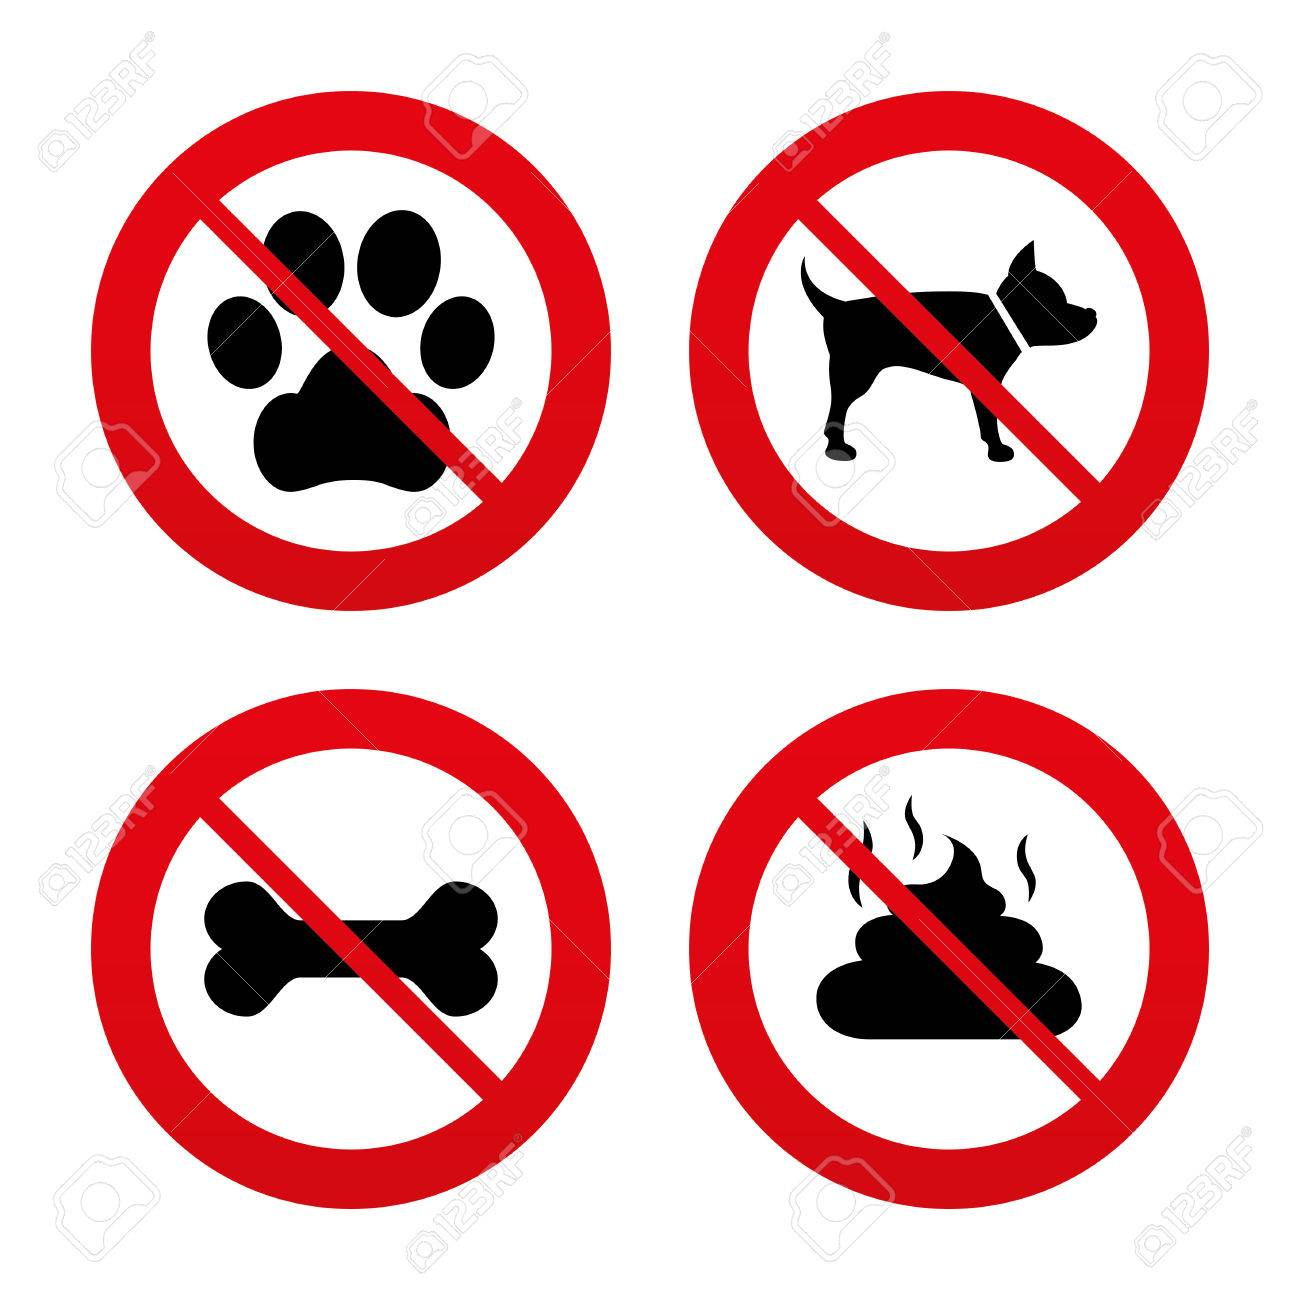 Dog Forbidden Stock Illustrations, Cliparts And Royalty Free Dog ...